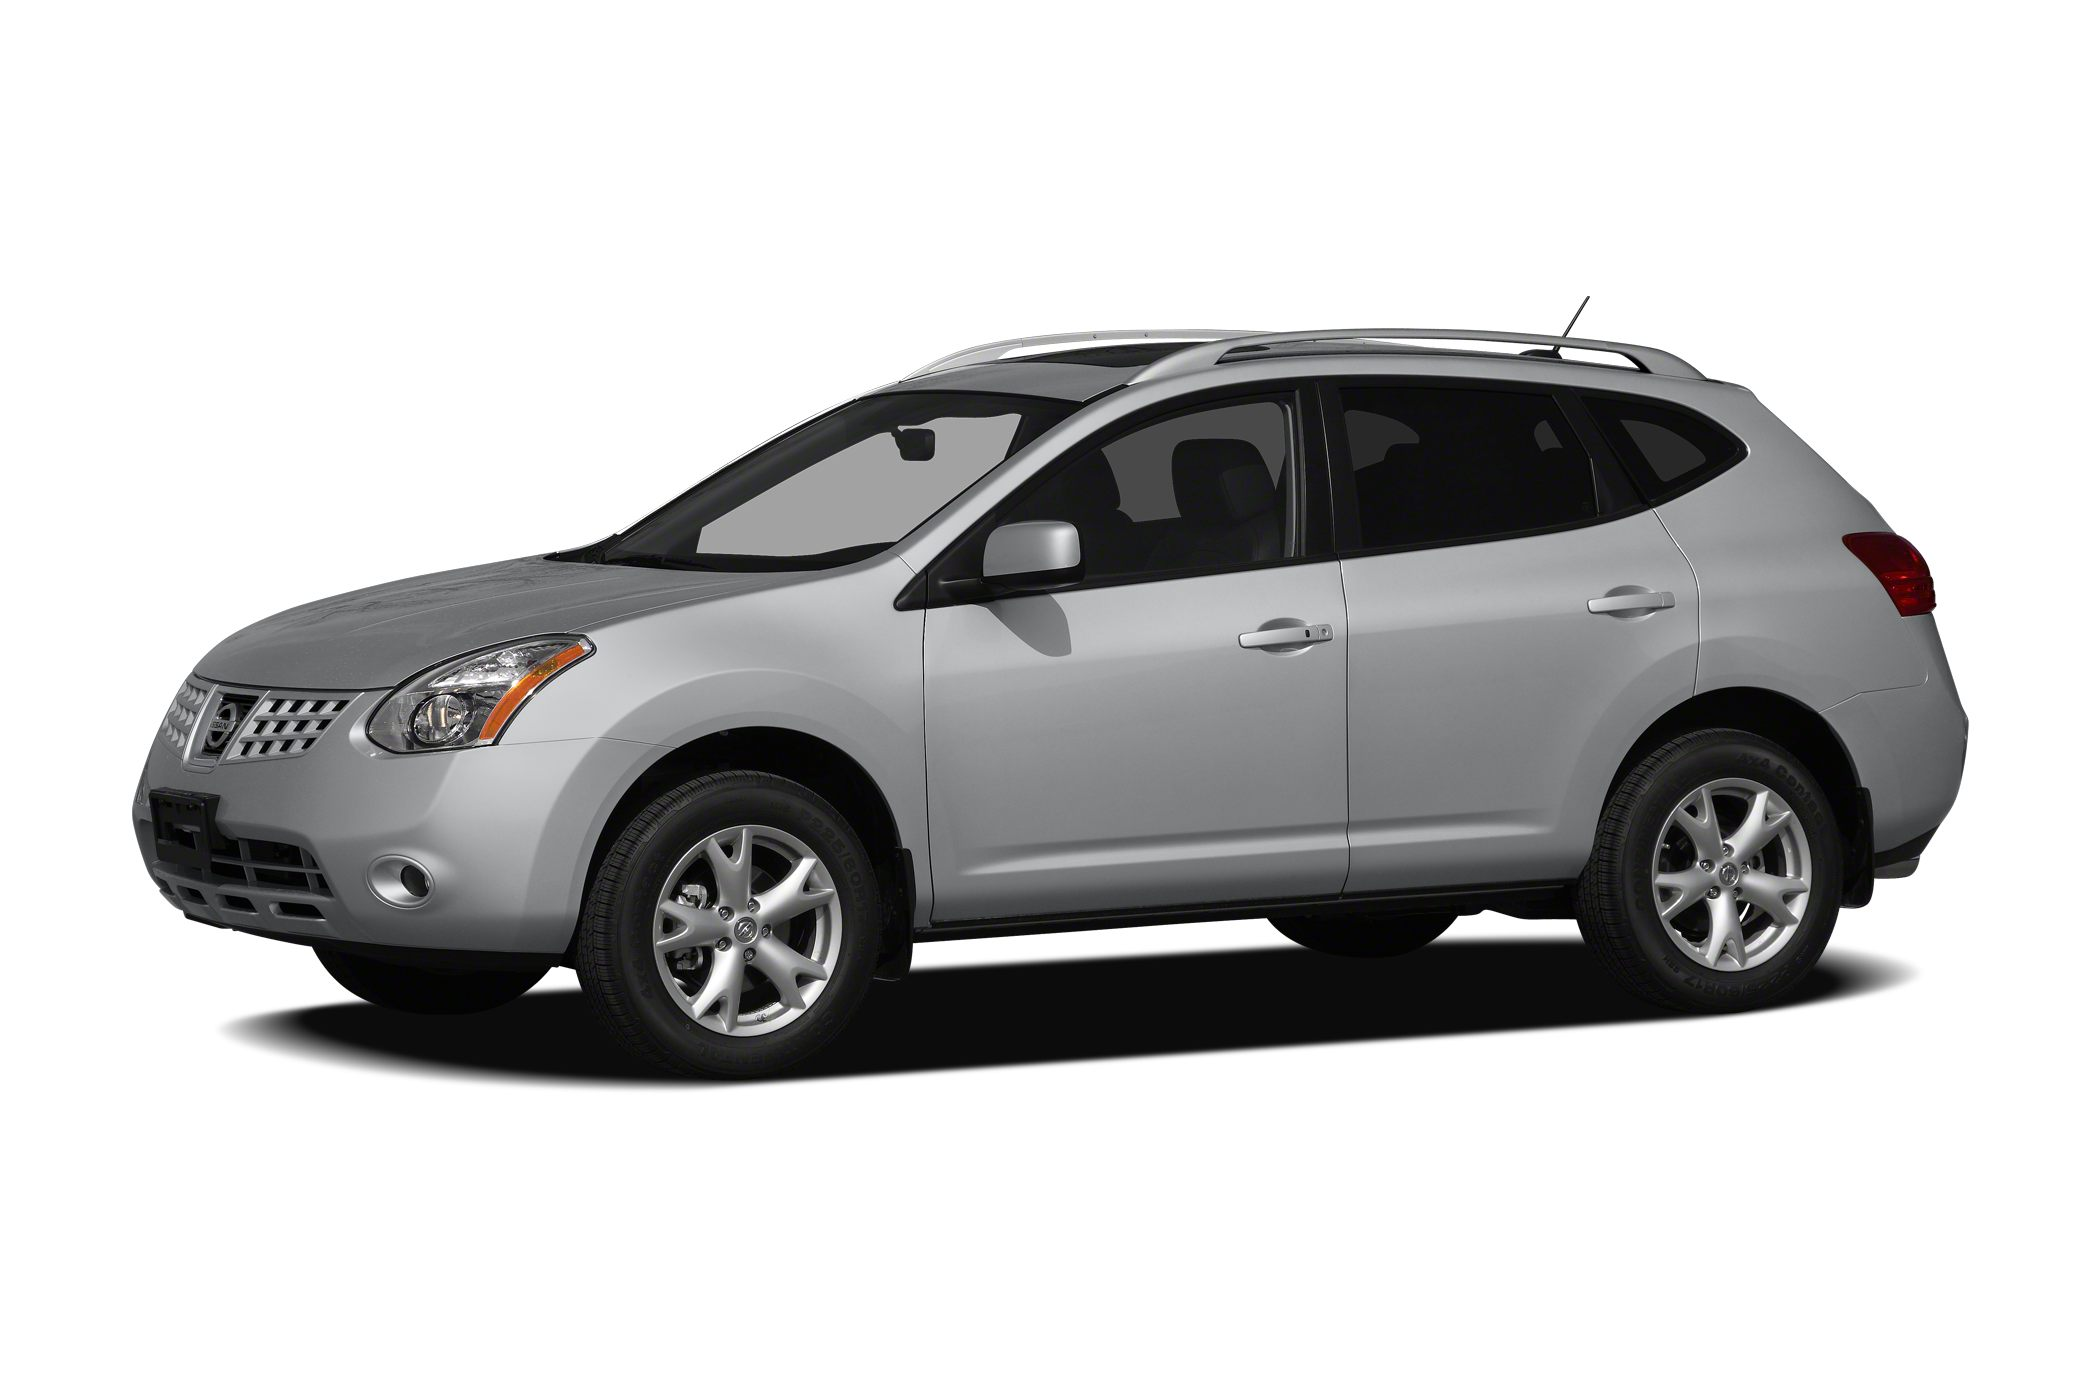 2010 Nissan Rogue SL SUV for sale in Colonial Heights for $11,995 with 117,725 miles.